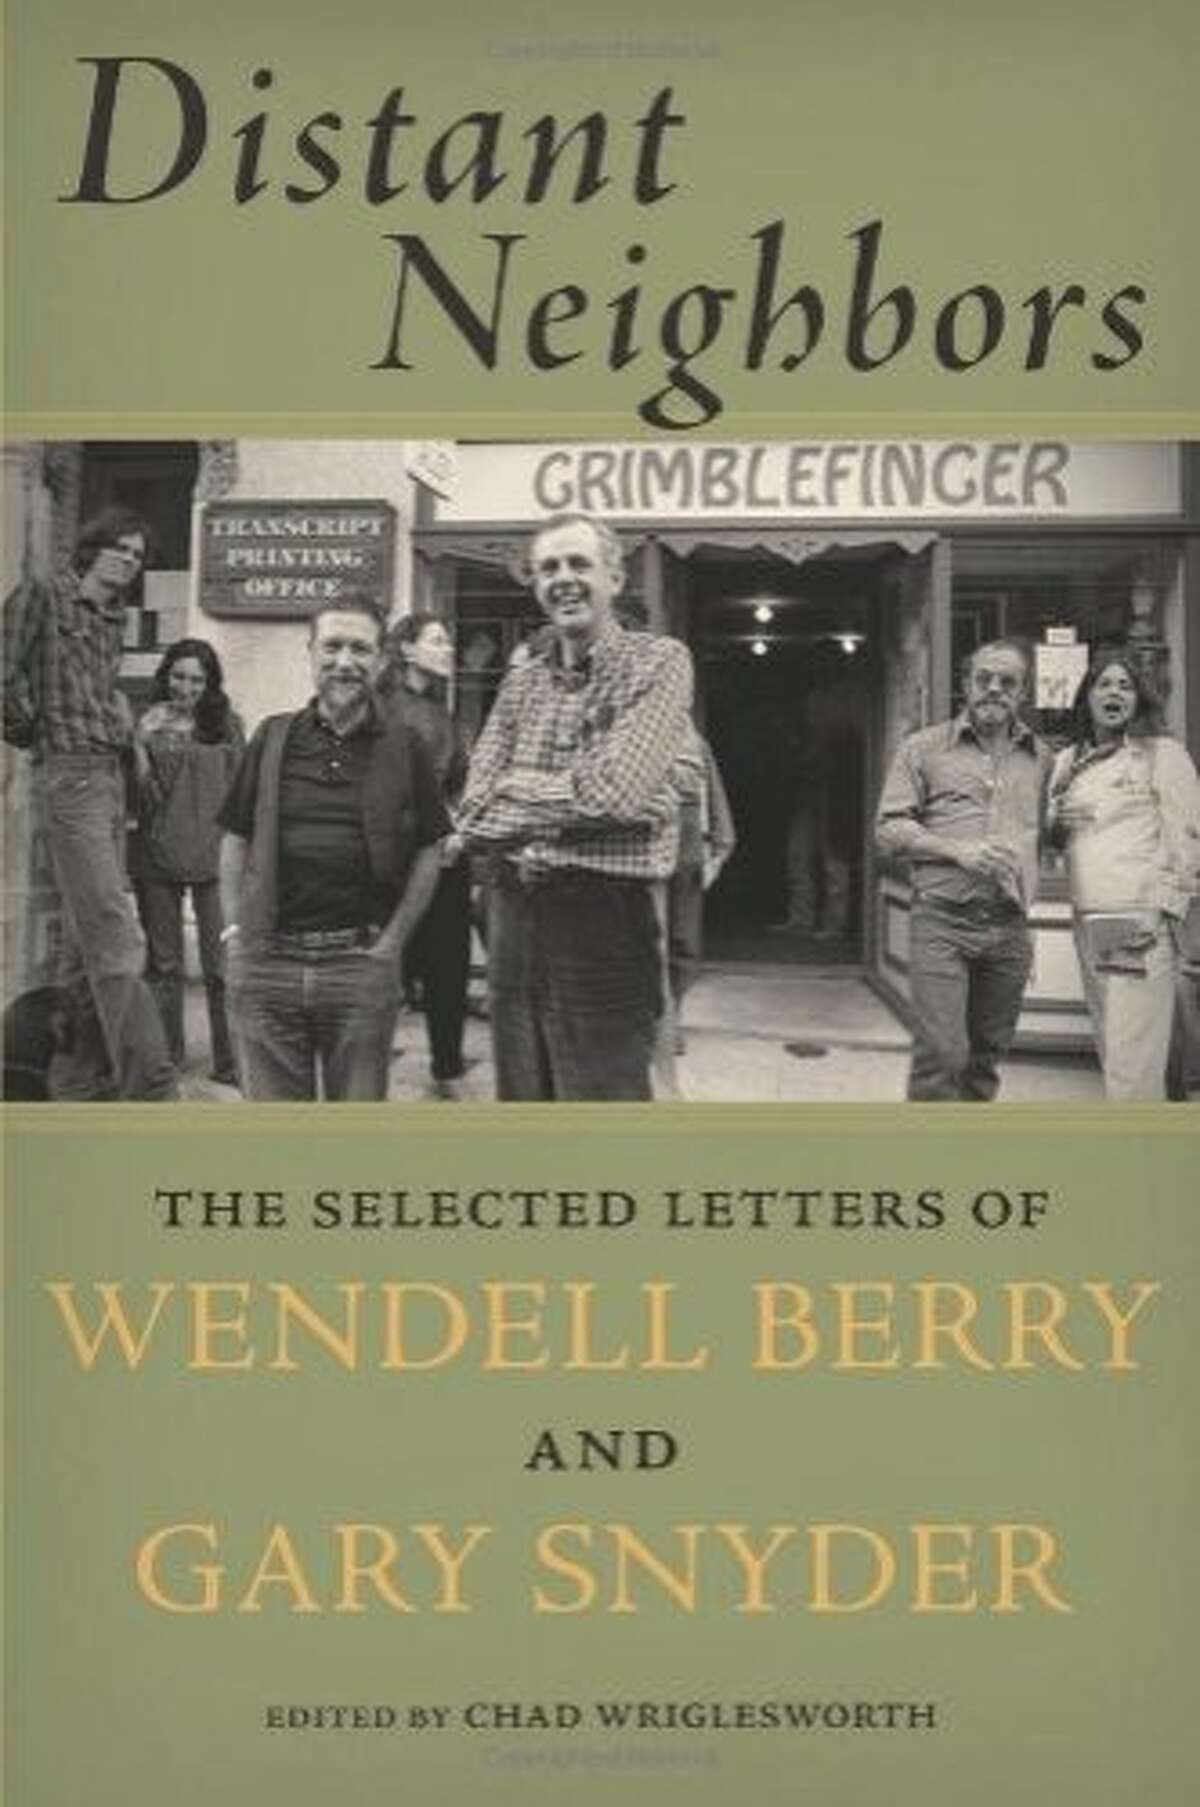 """""""Distant Neighbors: The Selected Letters of Wendell Berry and Gary Snyder,"""" edited by Chad Wriglesworth"""